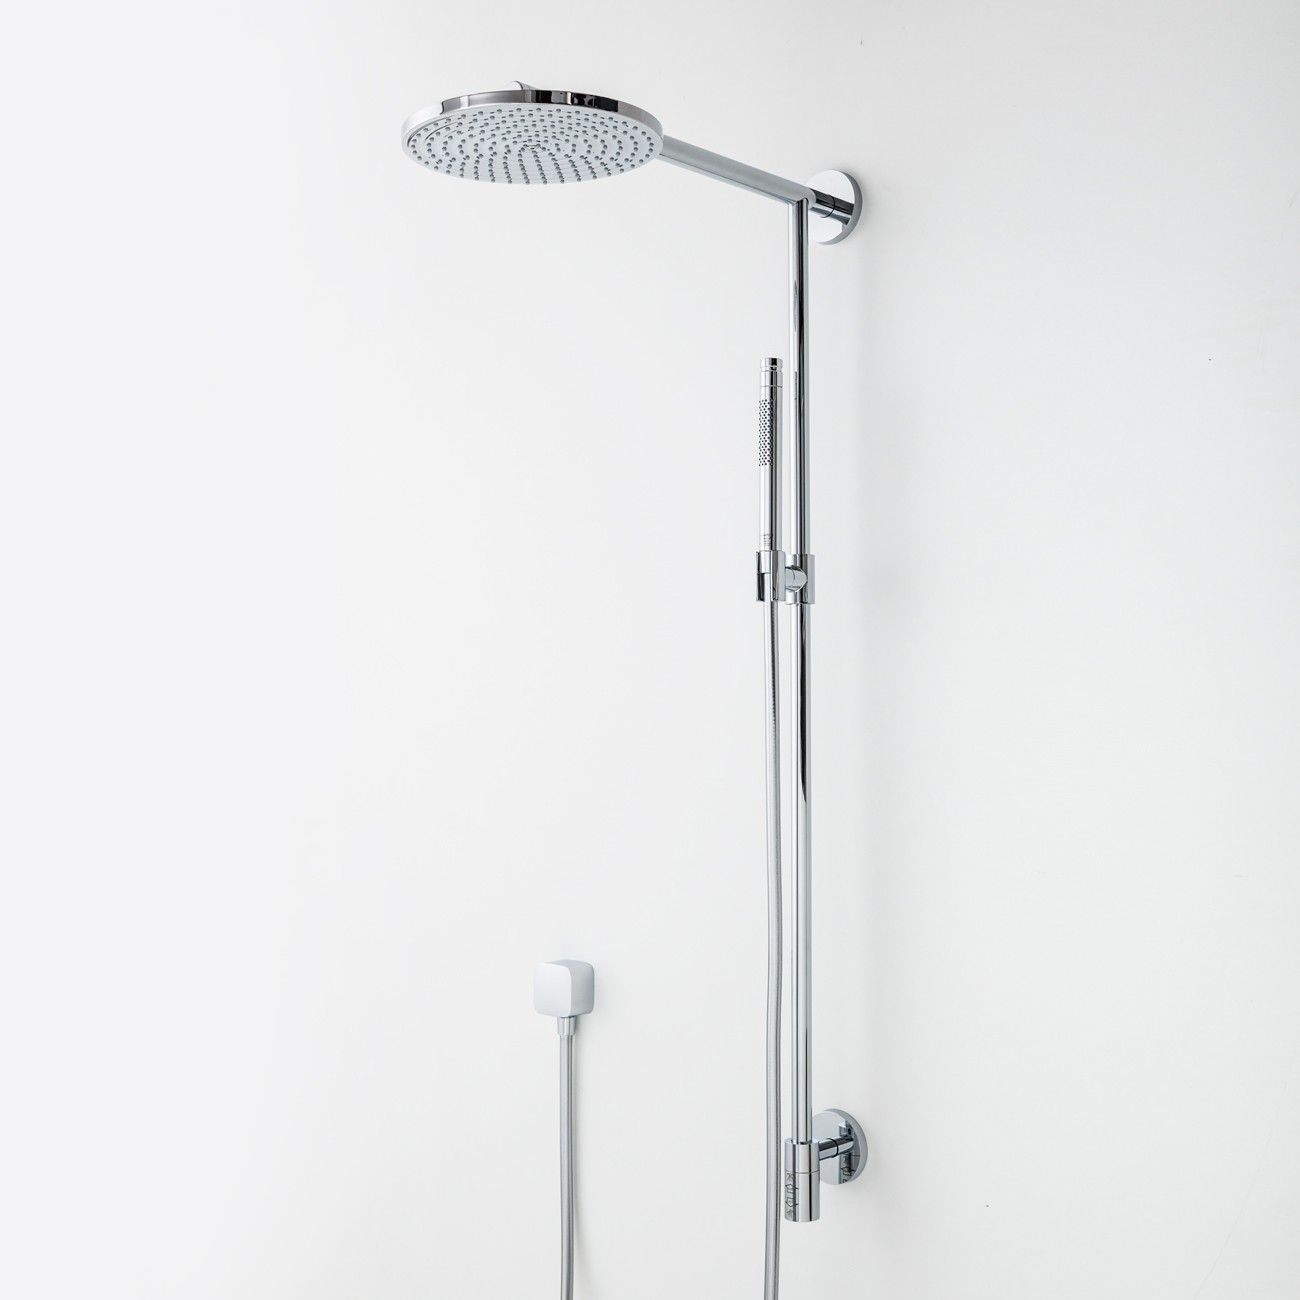 Famous Raindance Shower Hansgrohe Image Collection - Bathroom and ...